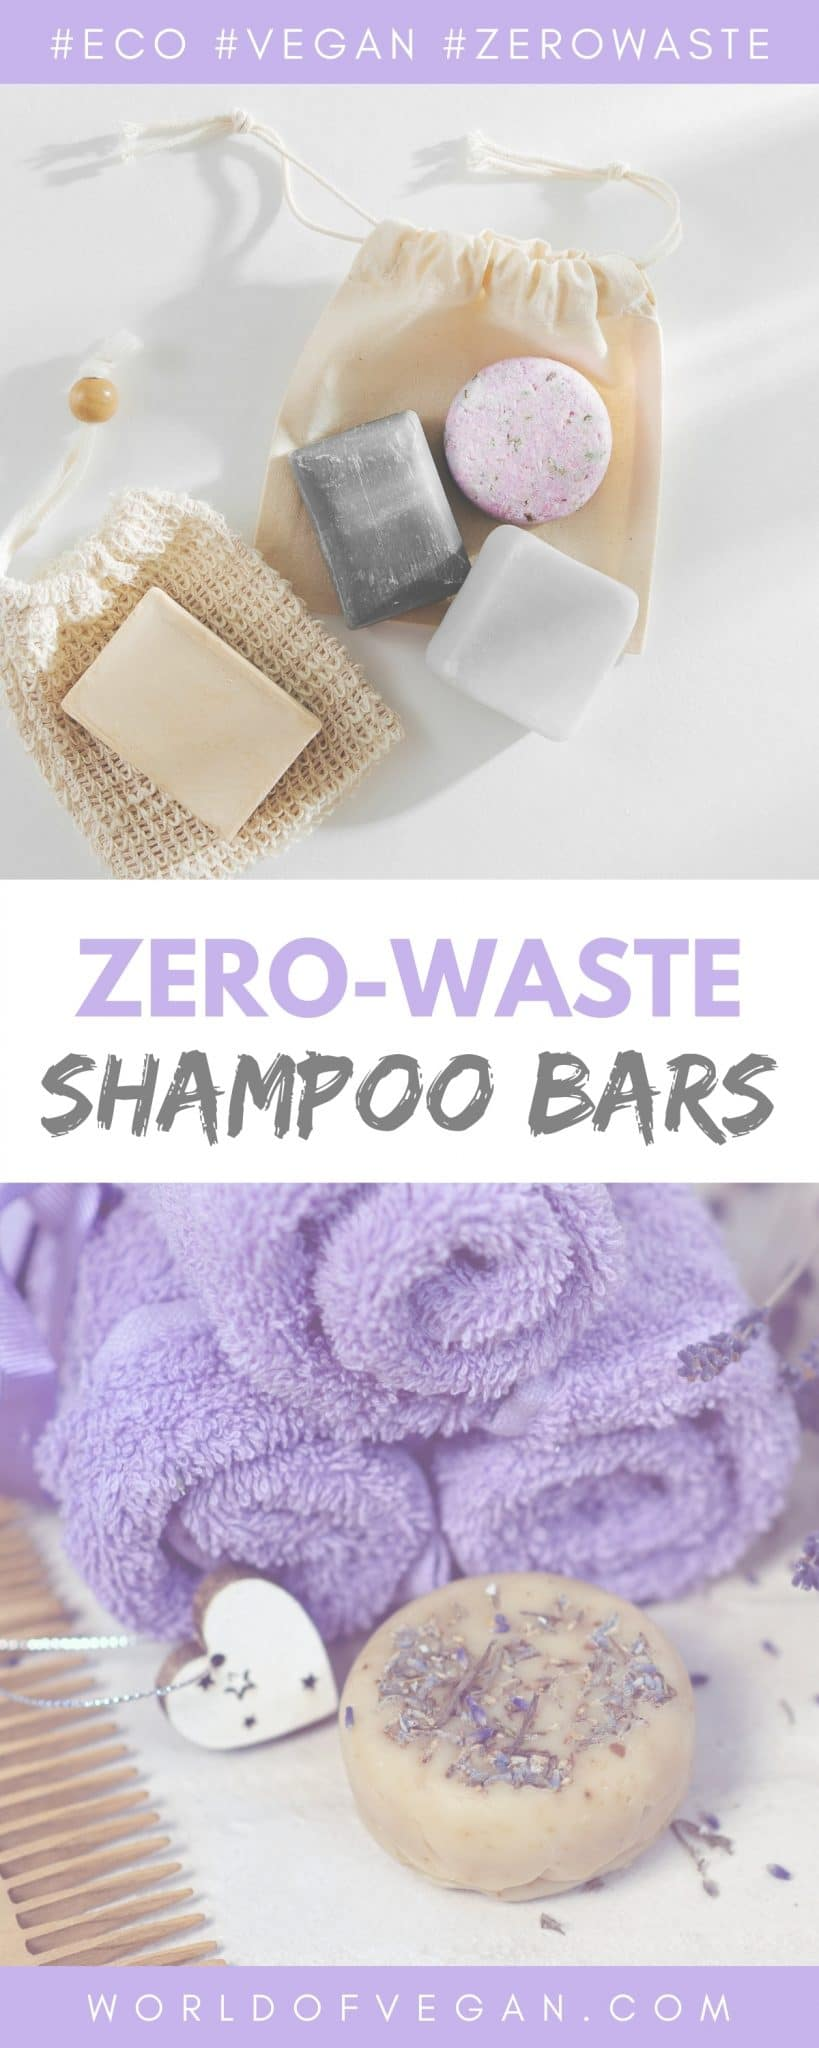 Best Vegan Zero Waste Shampoo Bars Photo